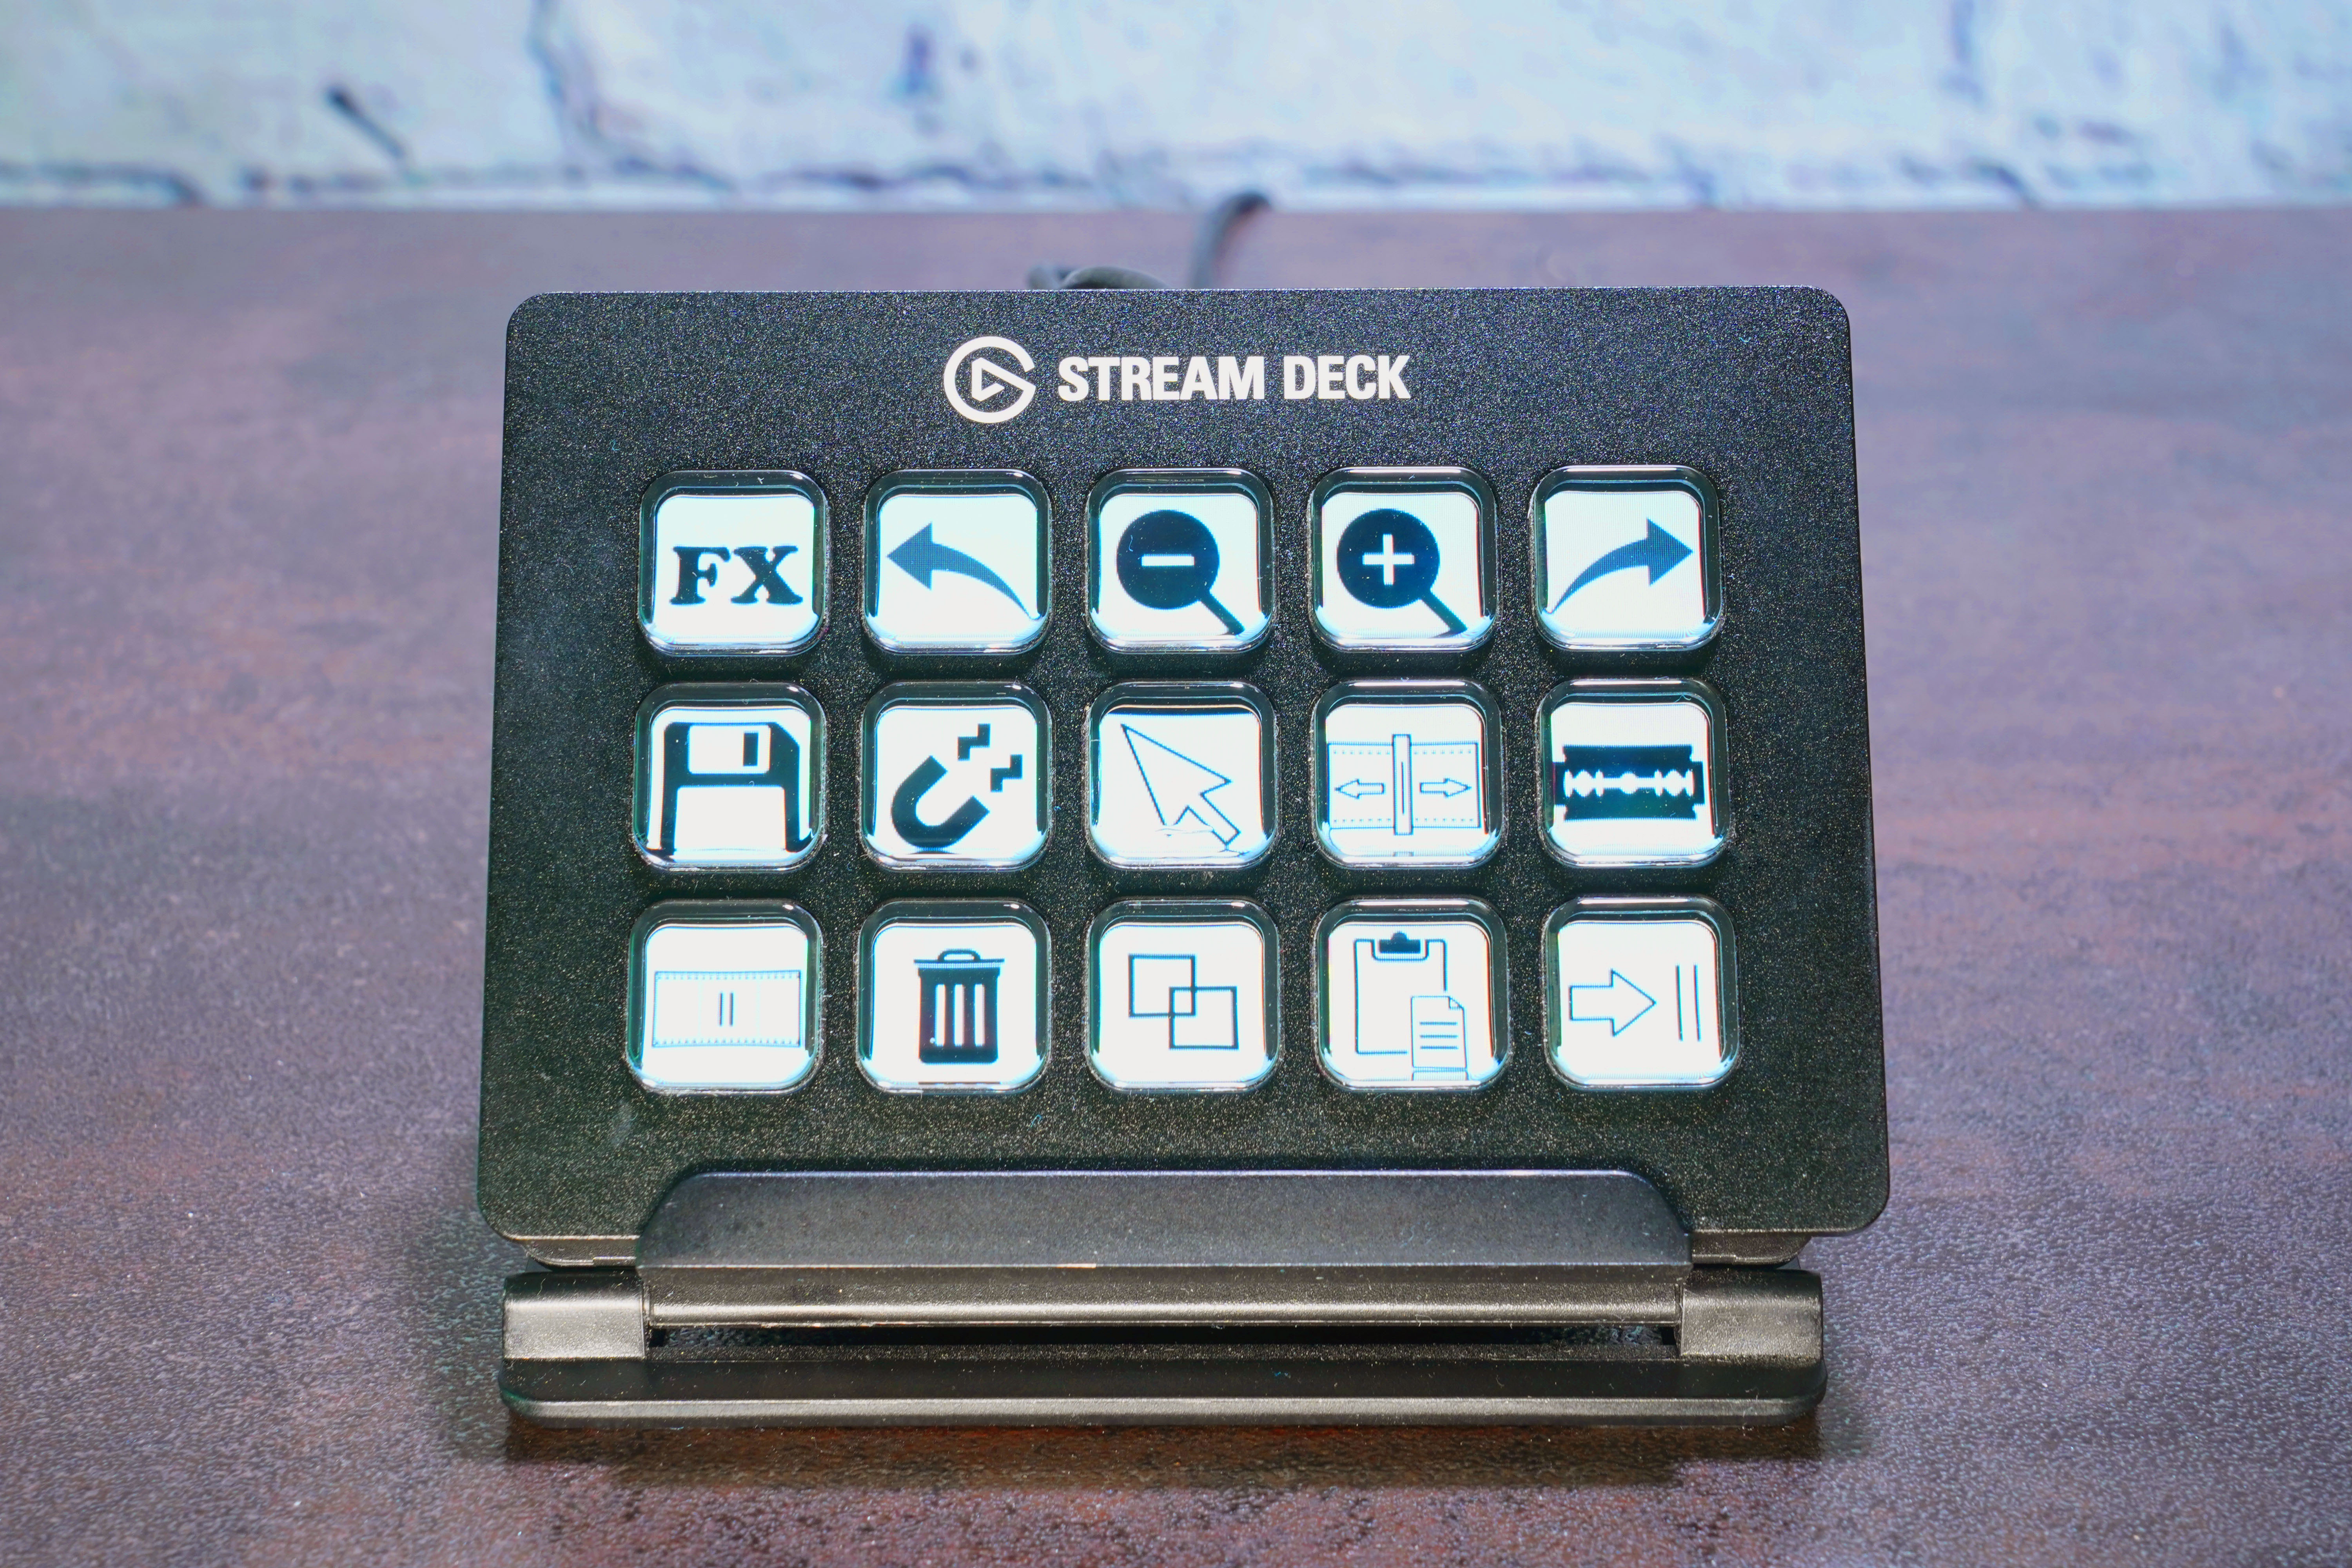 Review: The Elgato Stream Deck is a customizable hardware